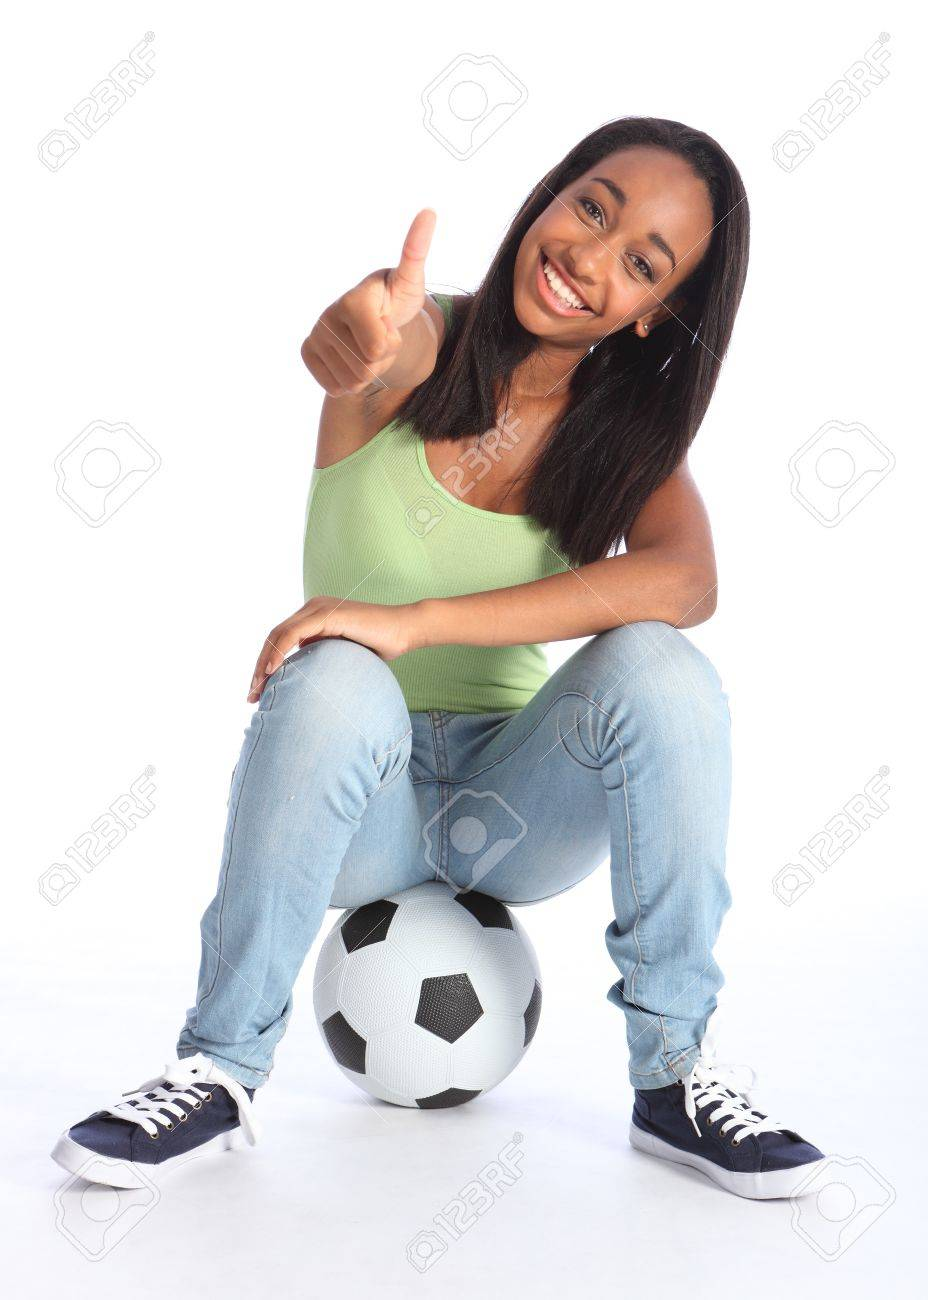 Football success for beautiful young African American teenage school girl soccer player, sitting on a ball with thumbs up sign. Girl wearing blue jeans and casual vest and has a big happy smile. Stock Photo - 10429853